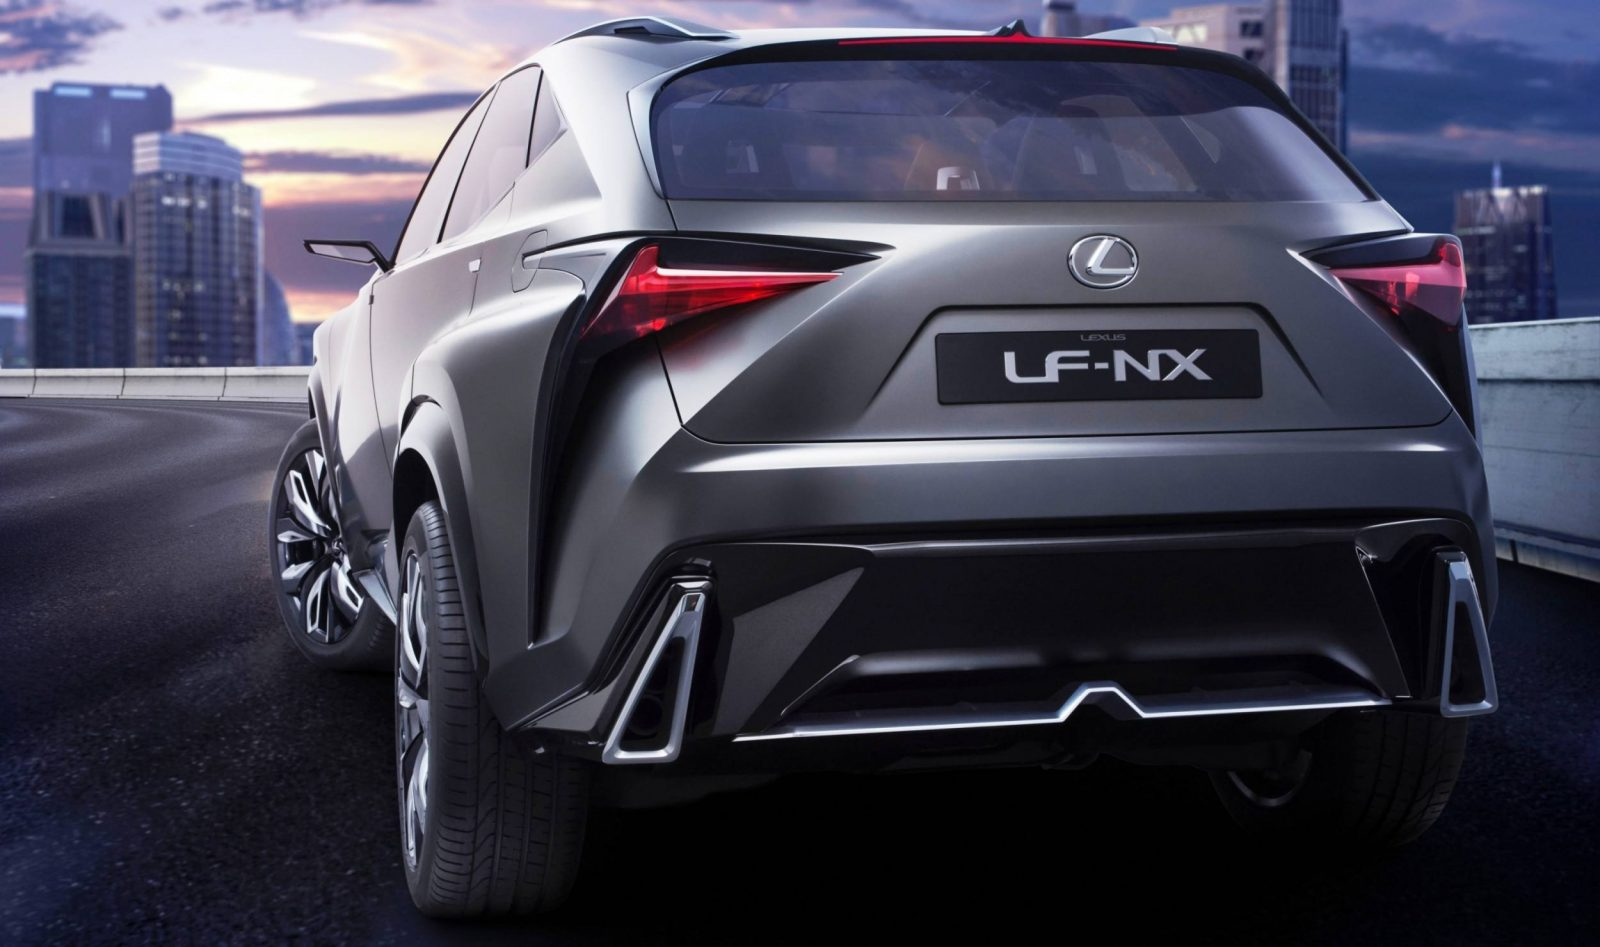 Fascinating LF-NX Turbo Concept Previews Exciting New Surfaces8